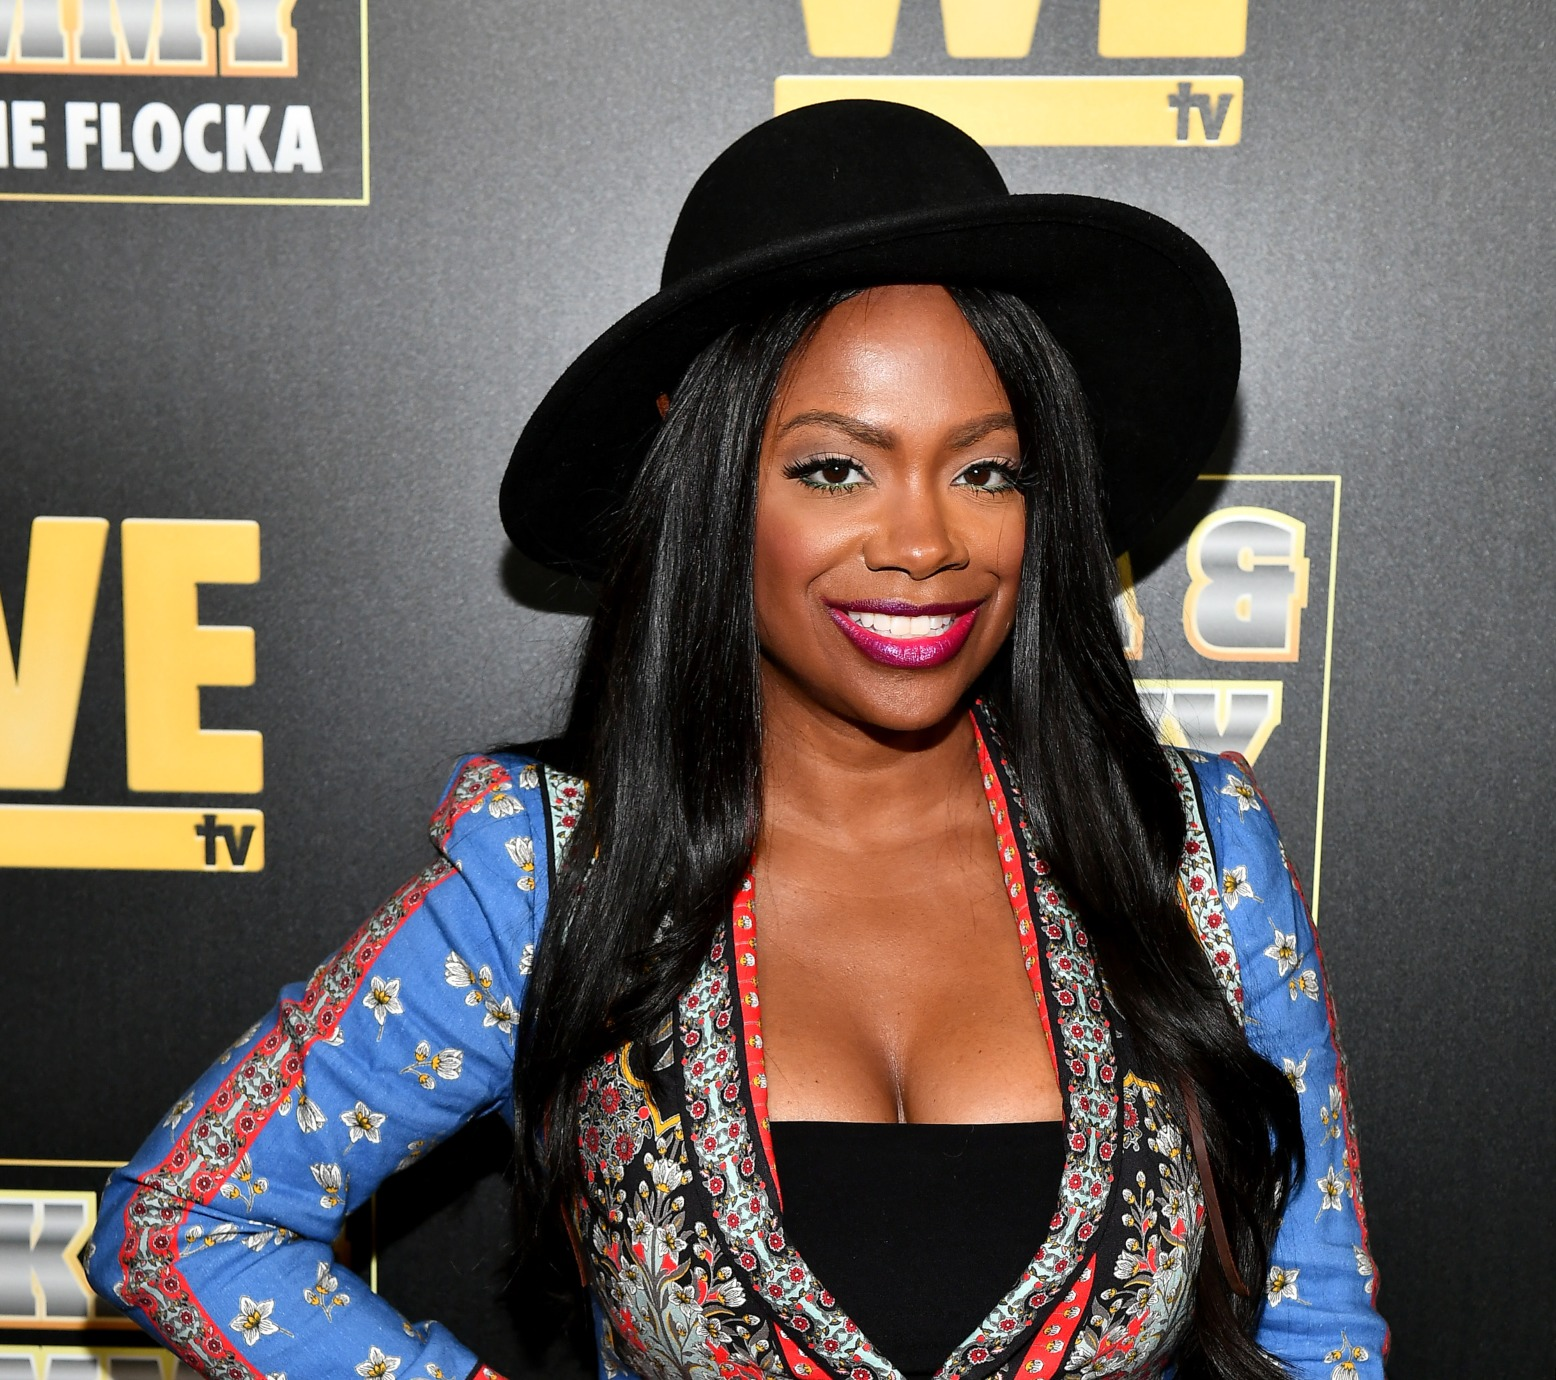 kandi-burruss-says-shes-a-hot-girl-even-with-her-extra-quarantine-pounds